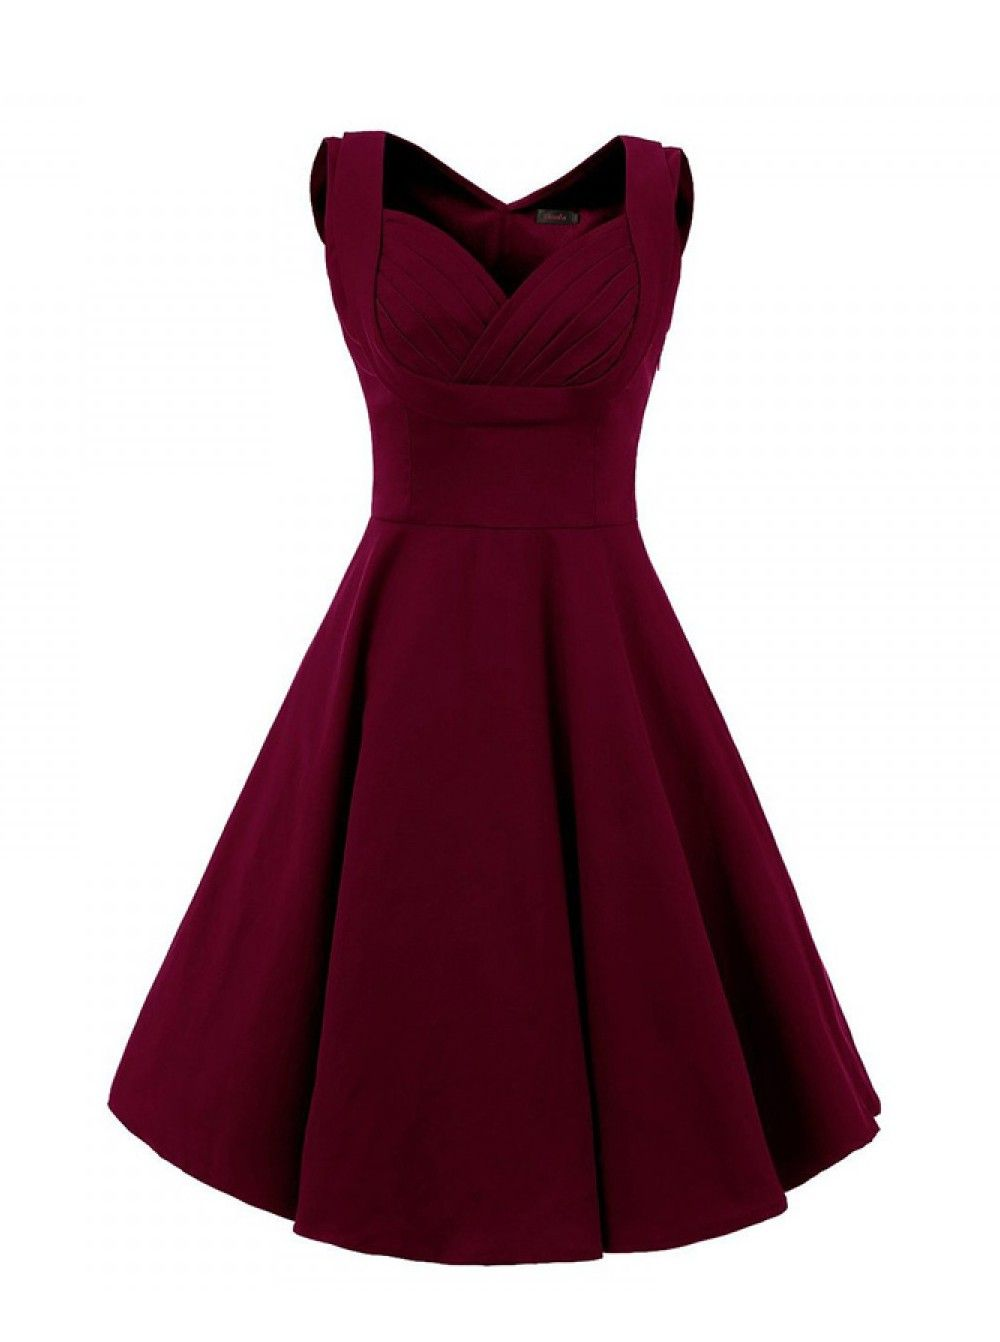 454865936ff Buy Women Vintage Style Square Neck Knee Length Burgundy Swing Party Dress  Special Occasion Dresses under US  24.99 only in SimpleDress.